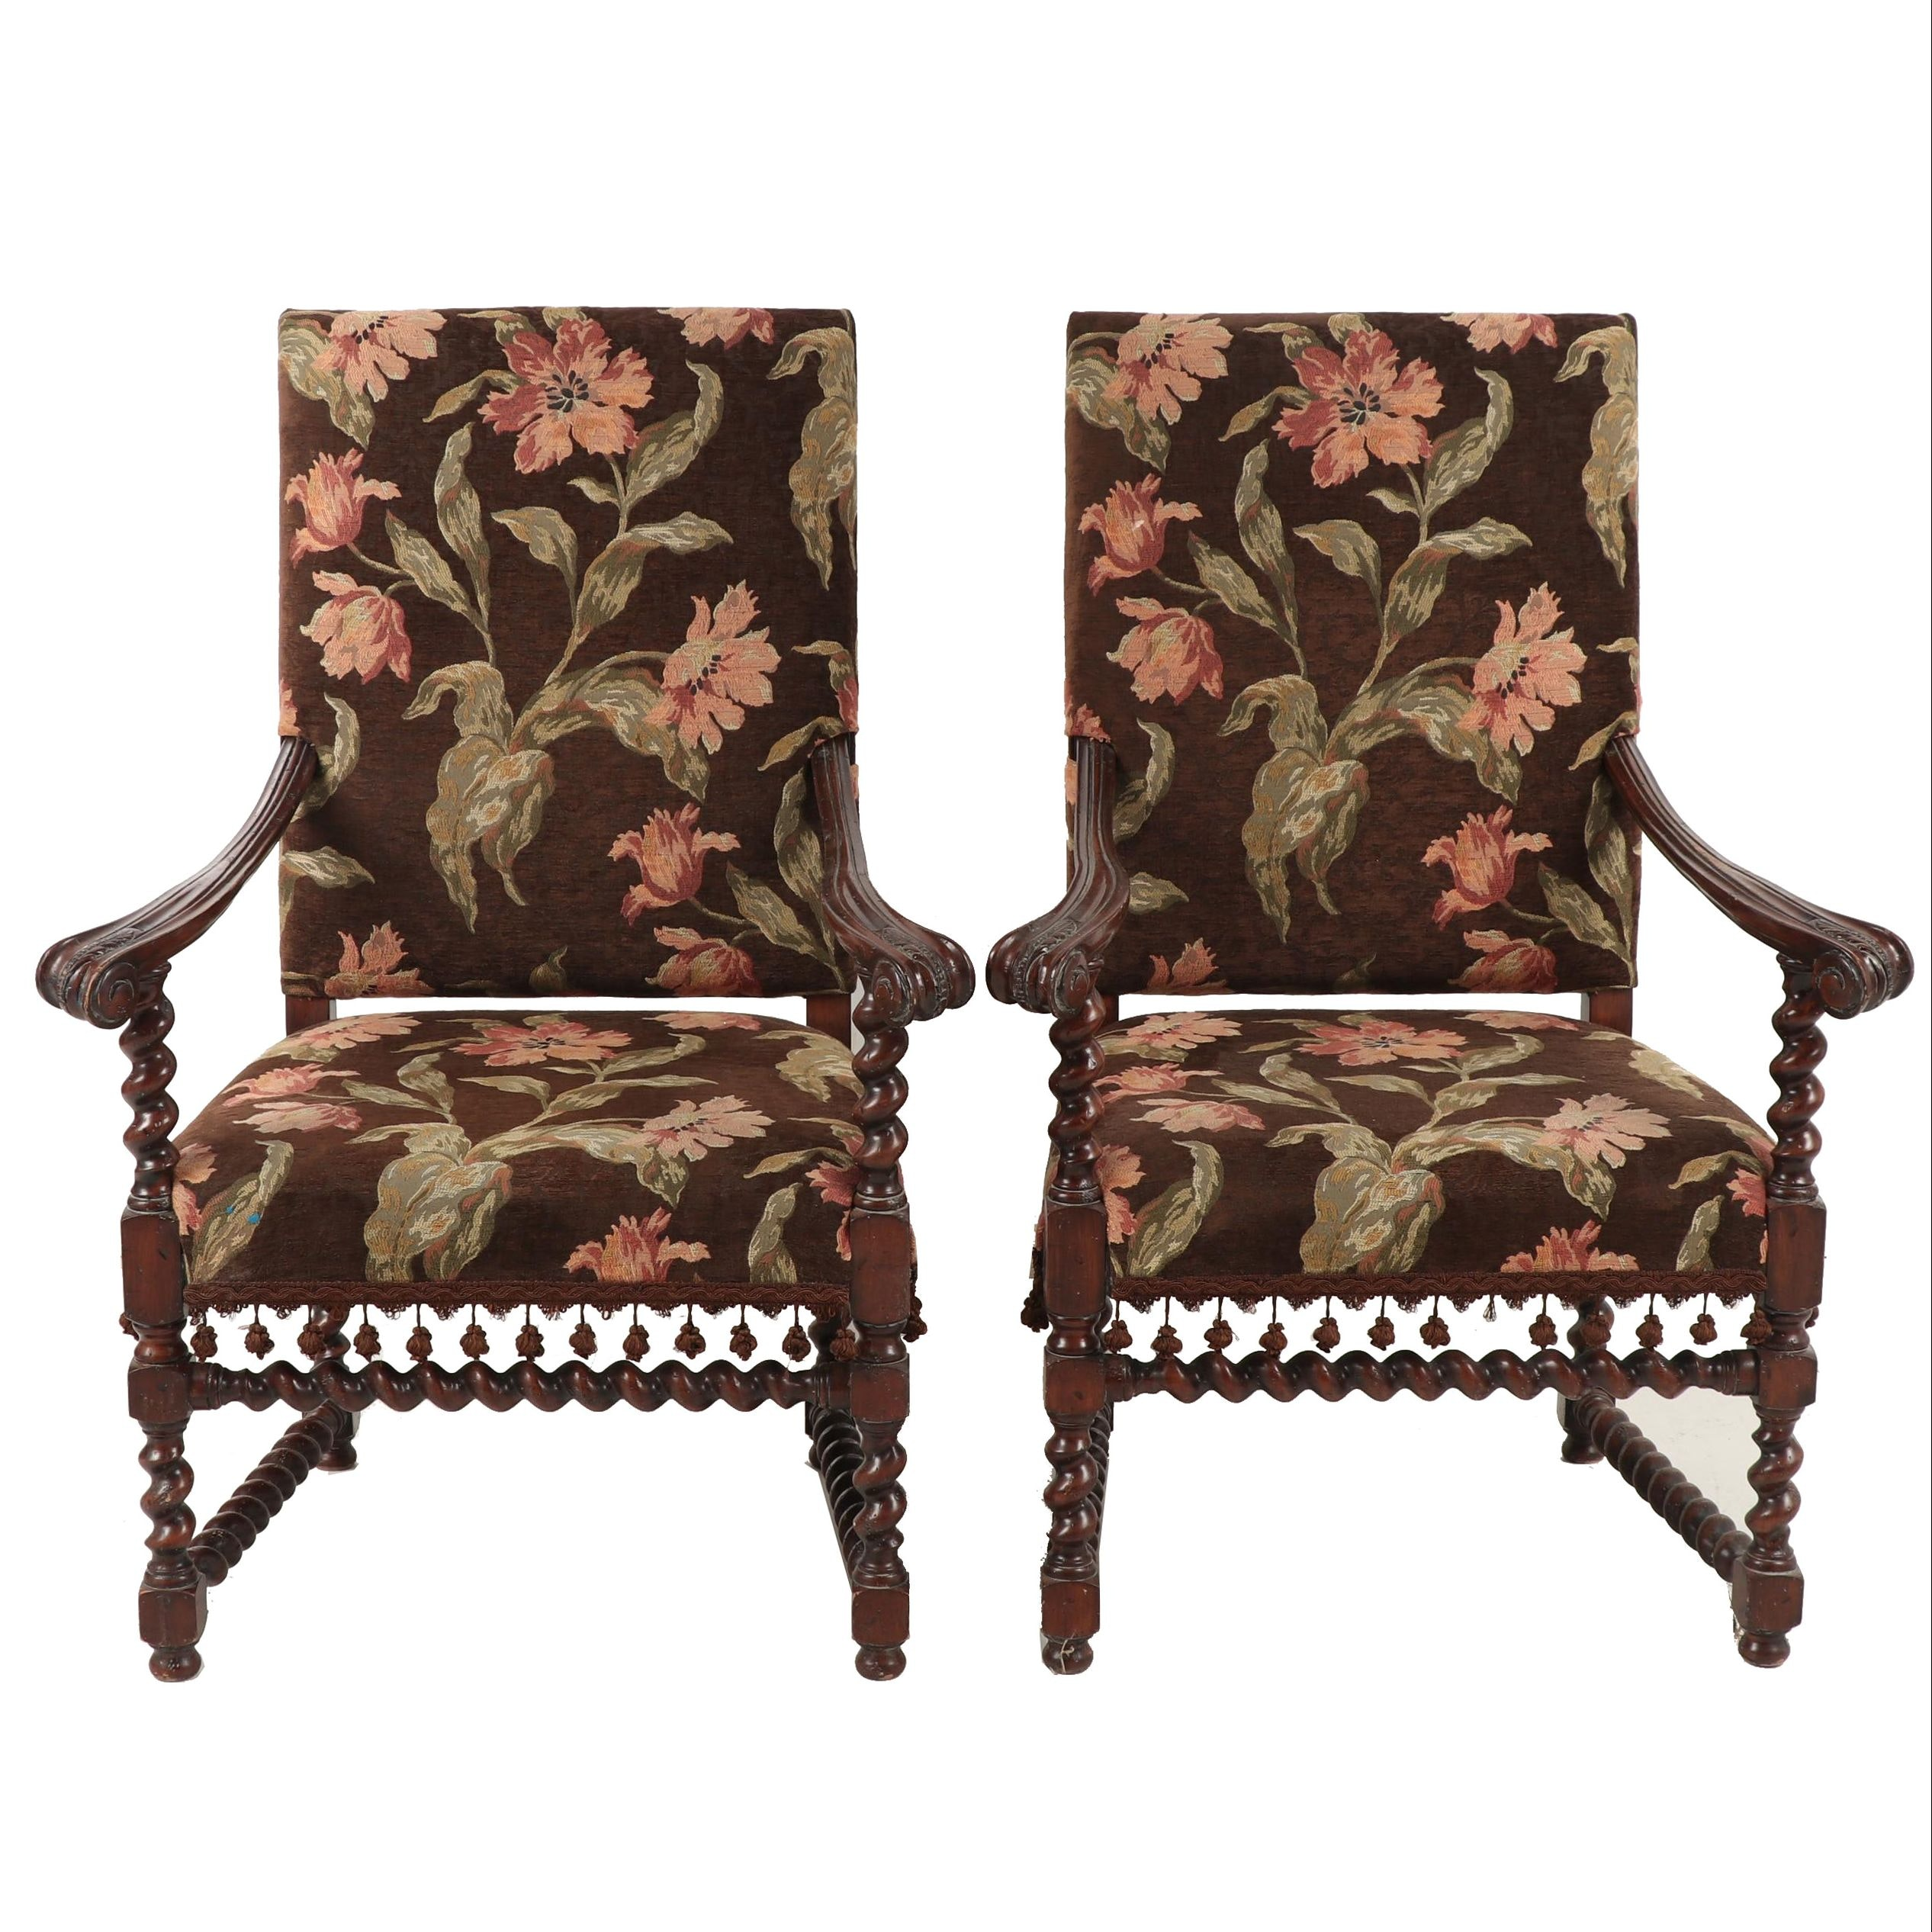 Pair of William and Mary Style Walnut-Finish Tapestry-Upholstered Armchairs